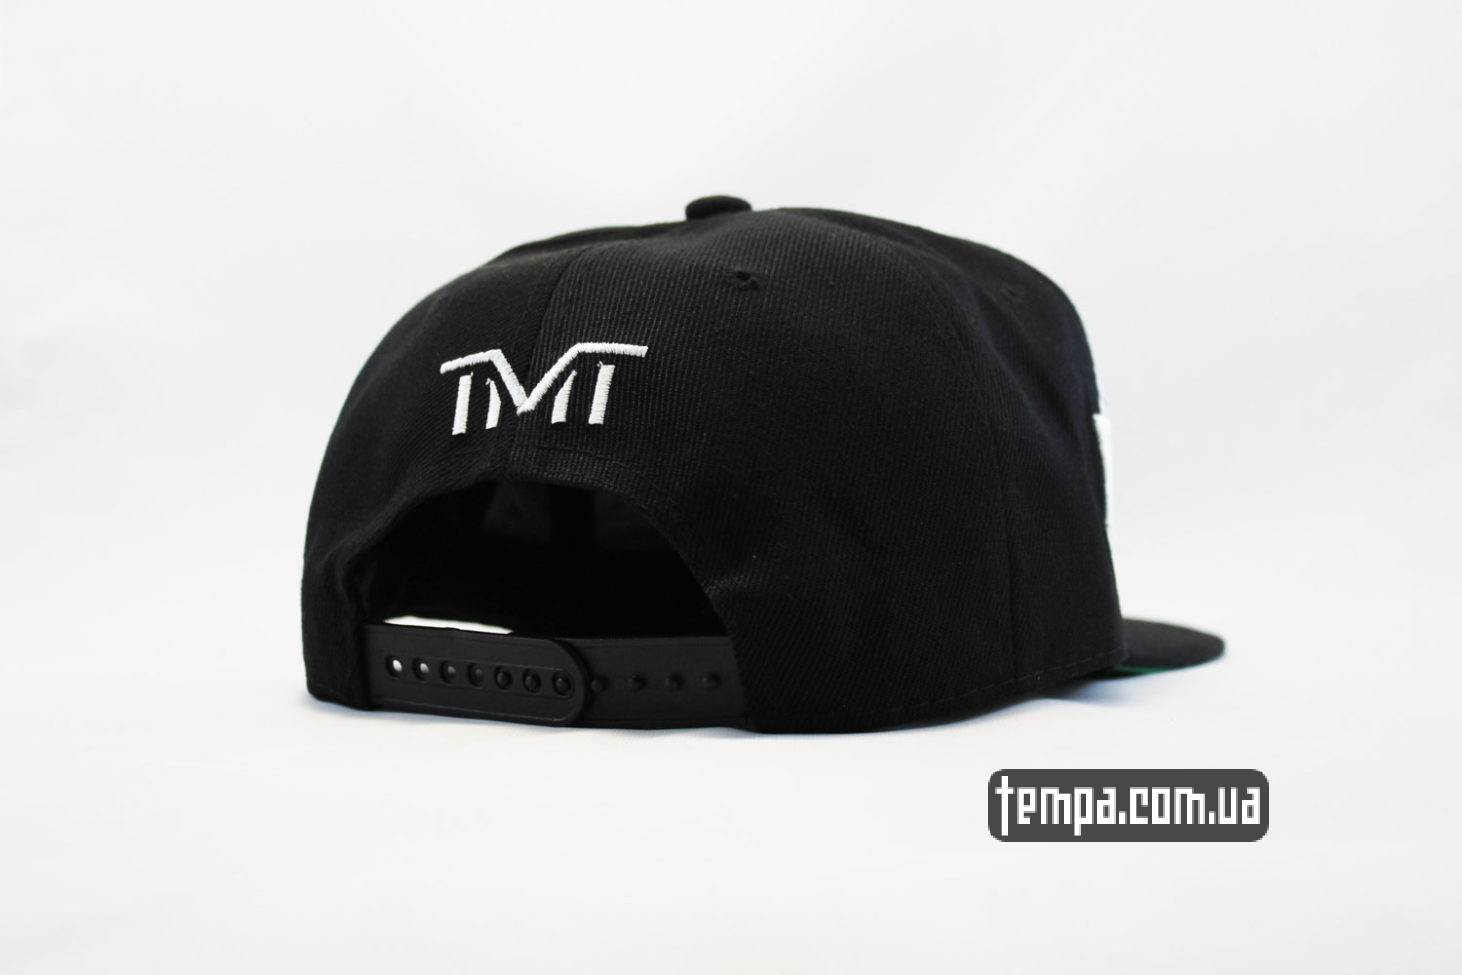 the money team кепка TMT snapback Star of David бейсболка еврейская